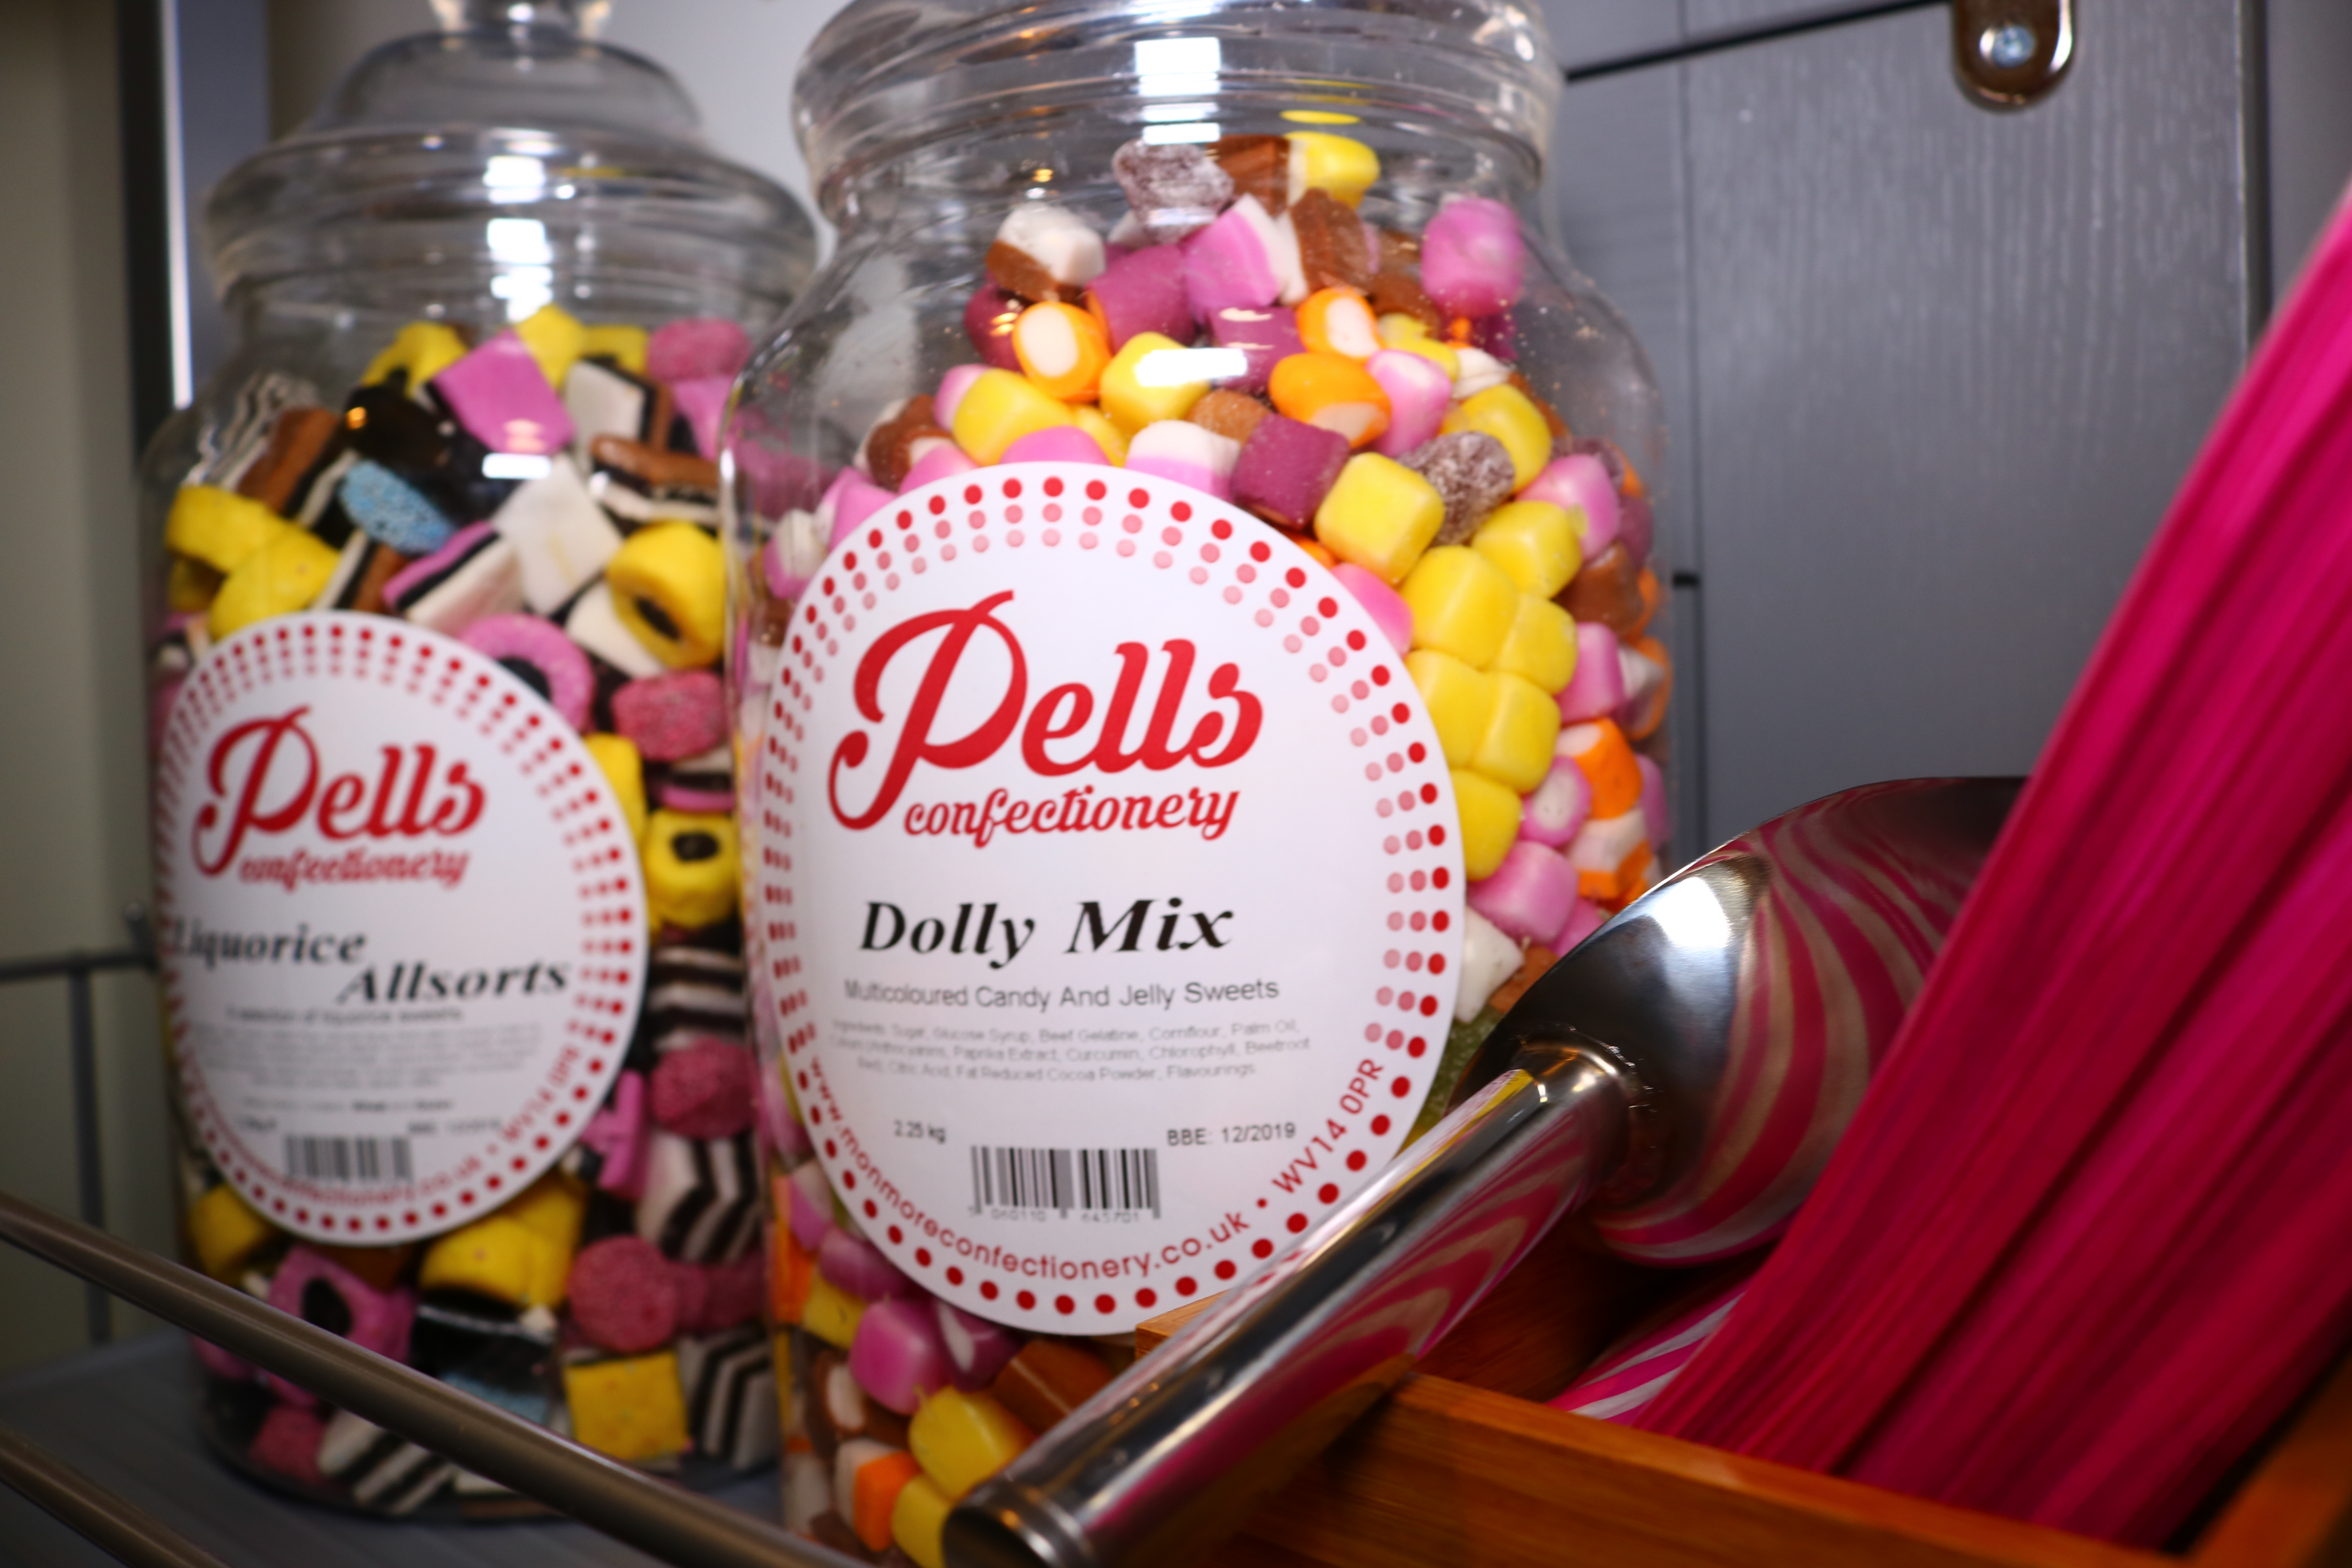 Resident Sweet shop at Buddleia House